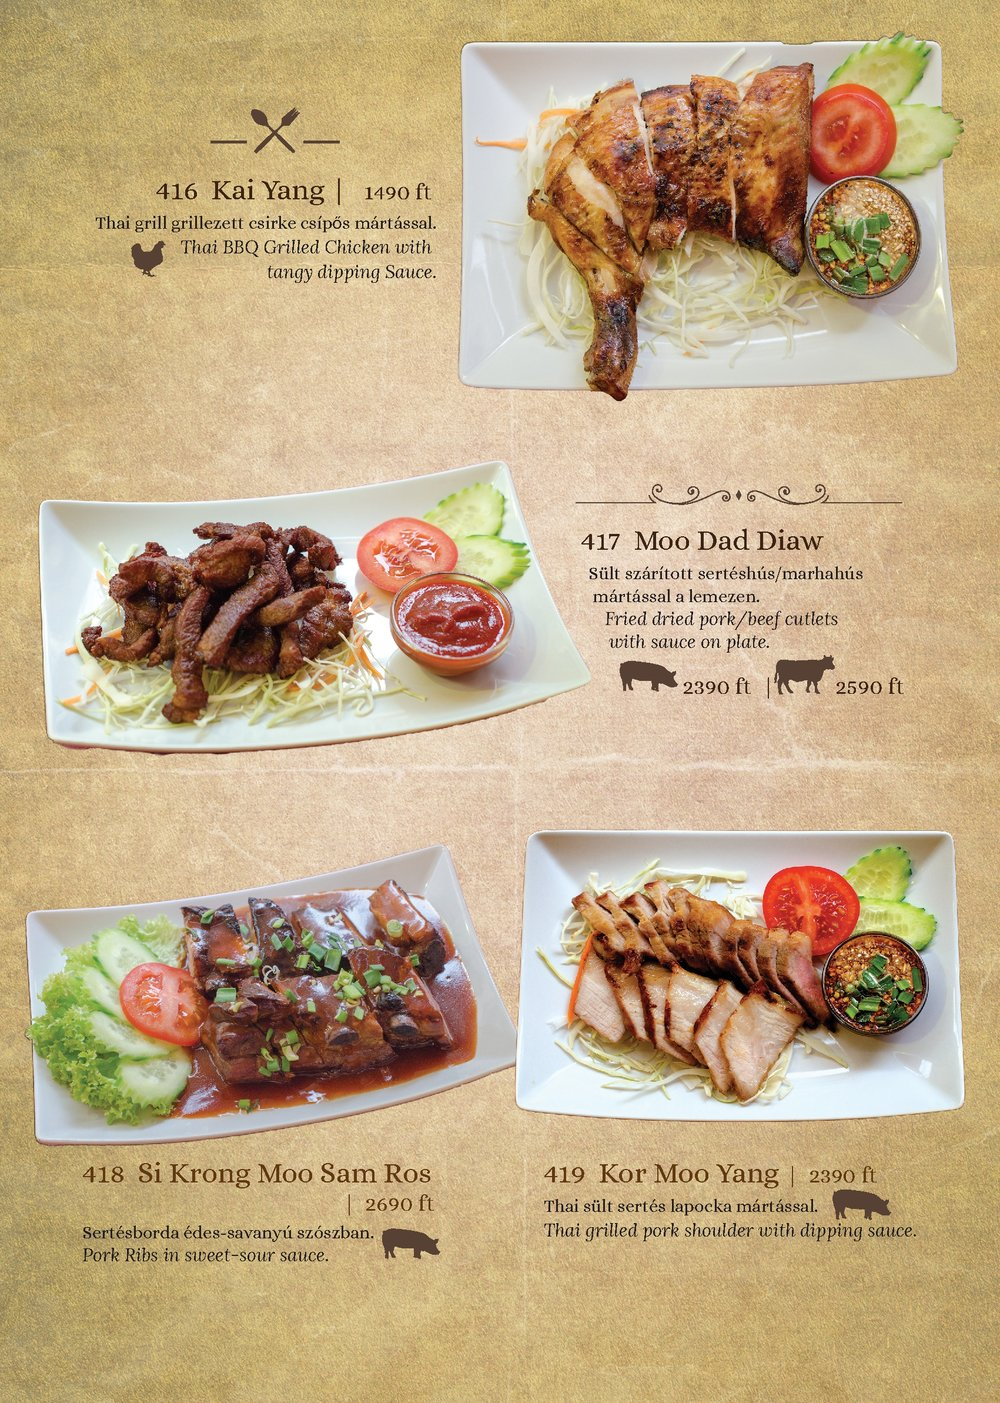 4.Sawasdee_menu_book-main_dish.2018.5.jpg